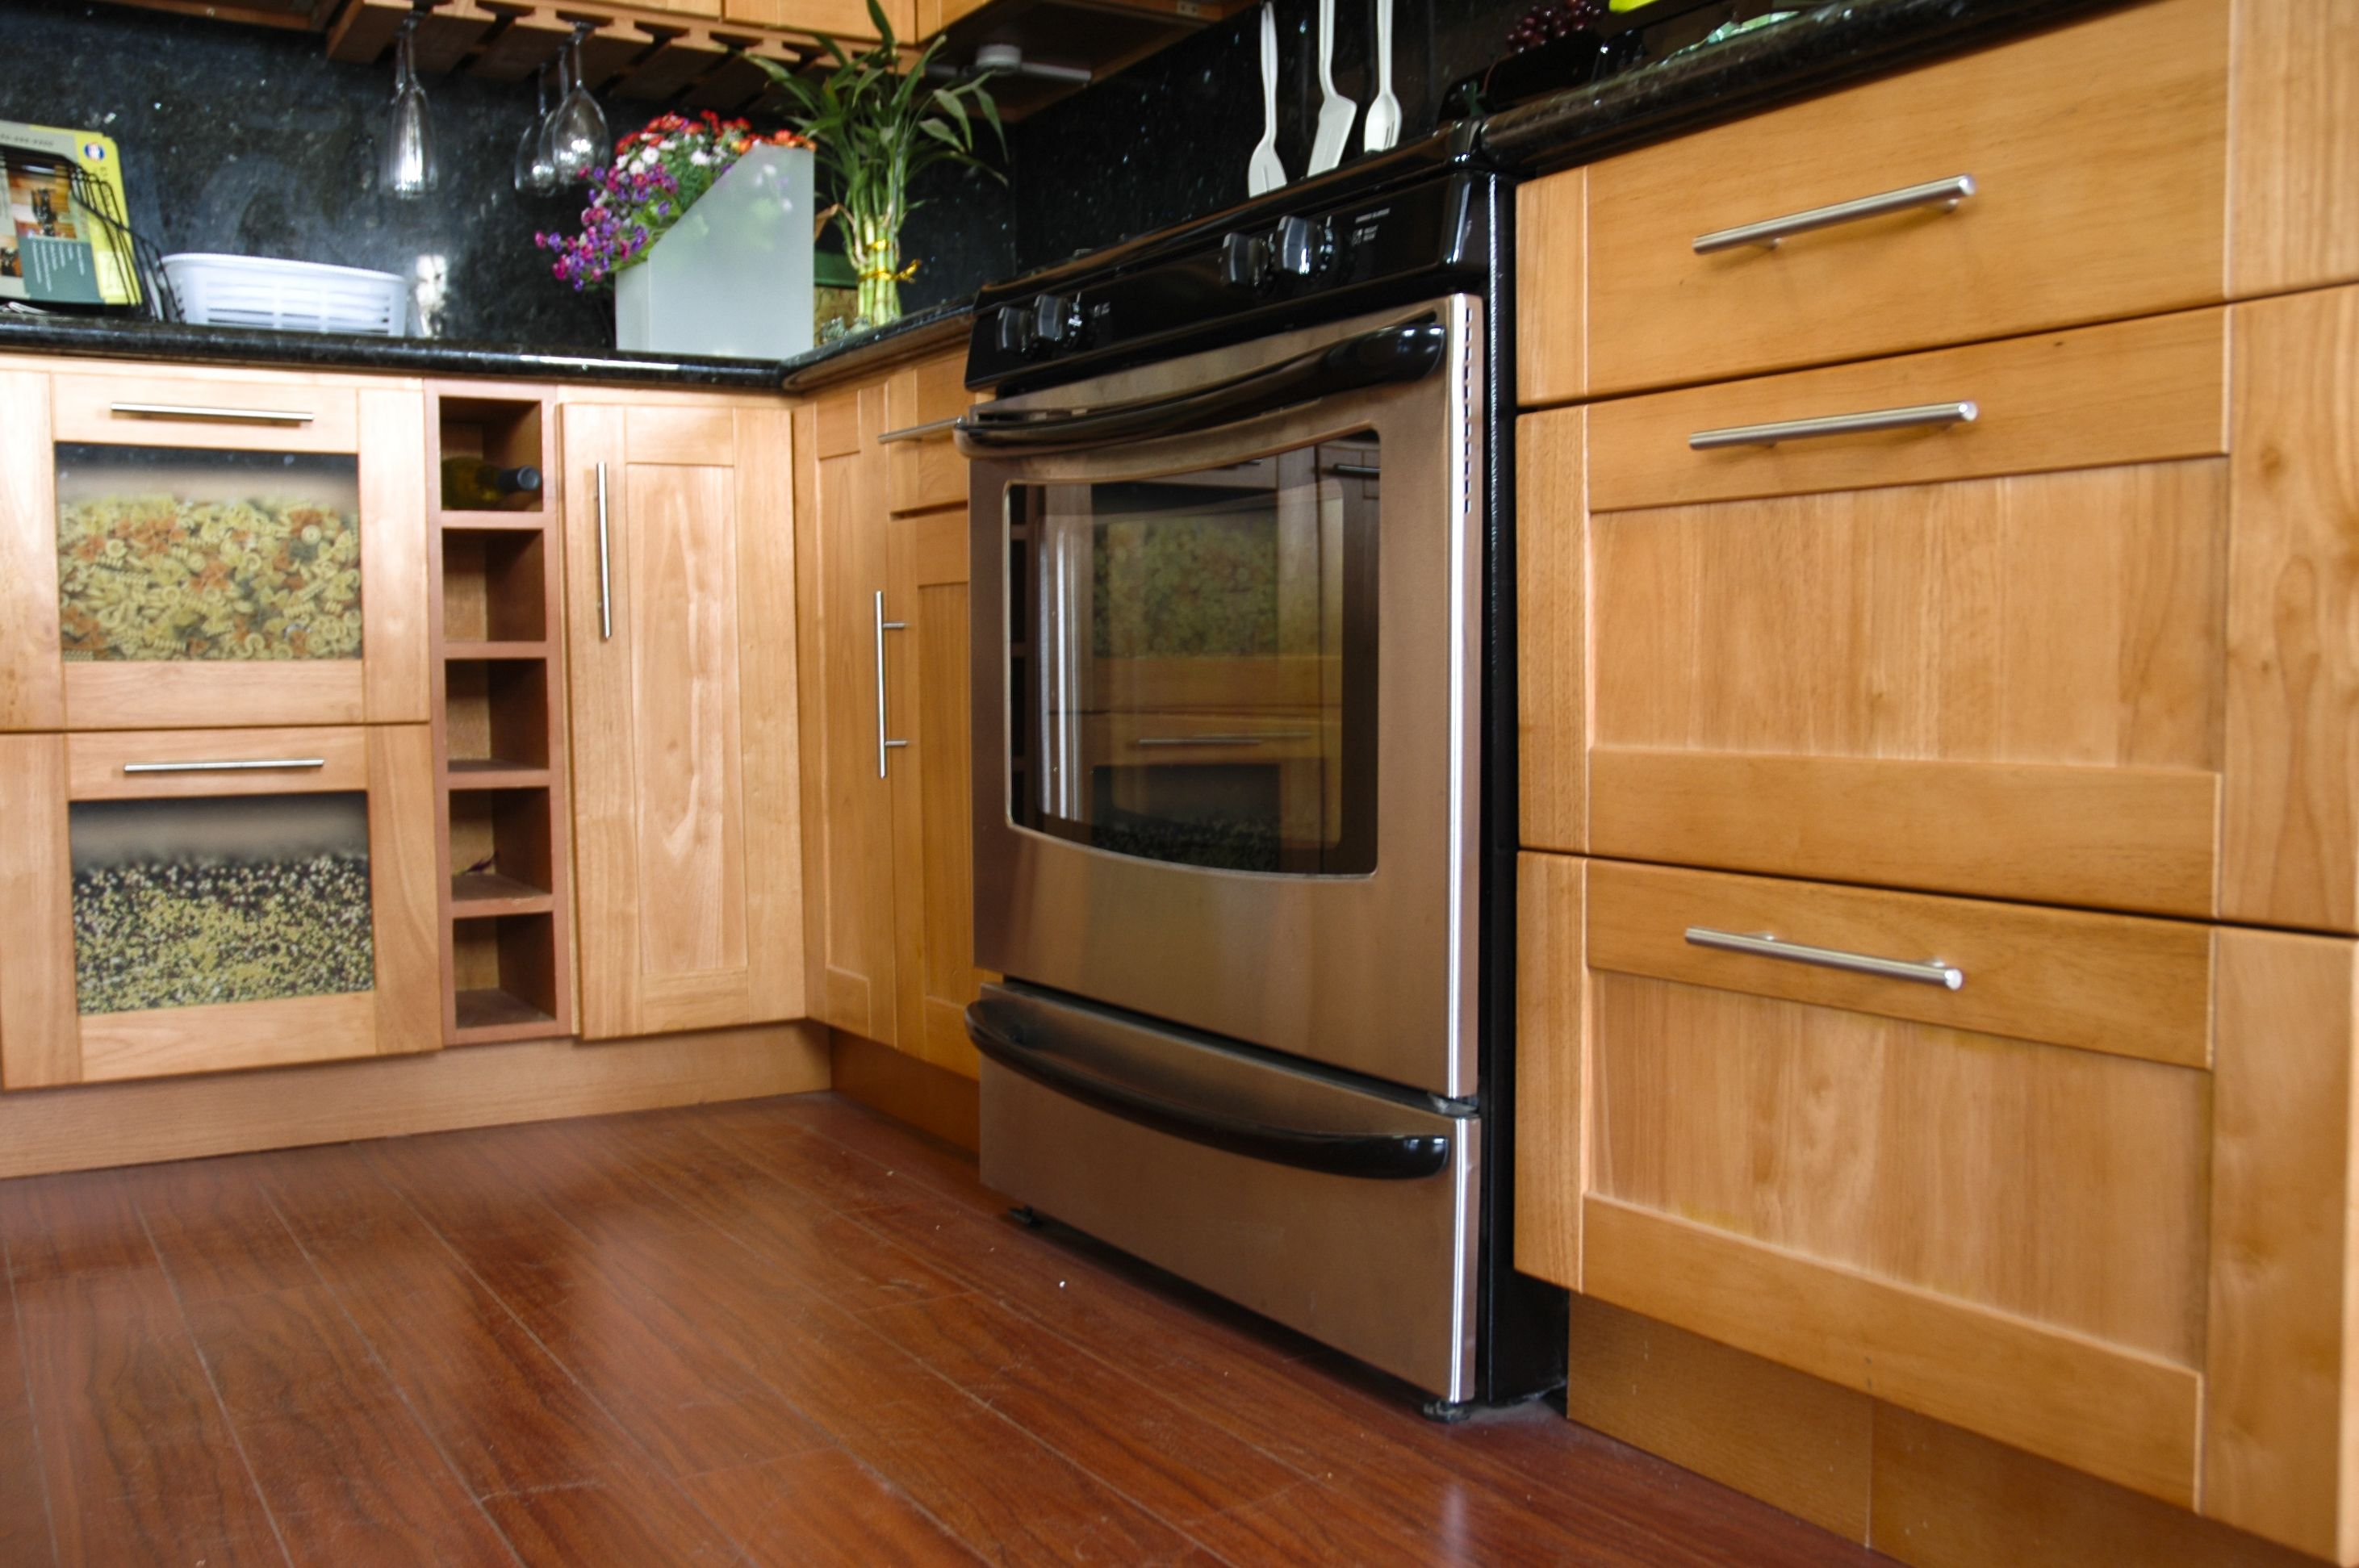 Red Oak Kitchen Cabinets Red Oak Kitchen Cabinets | Red Oak Shaker